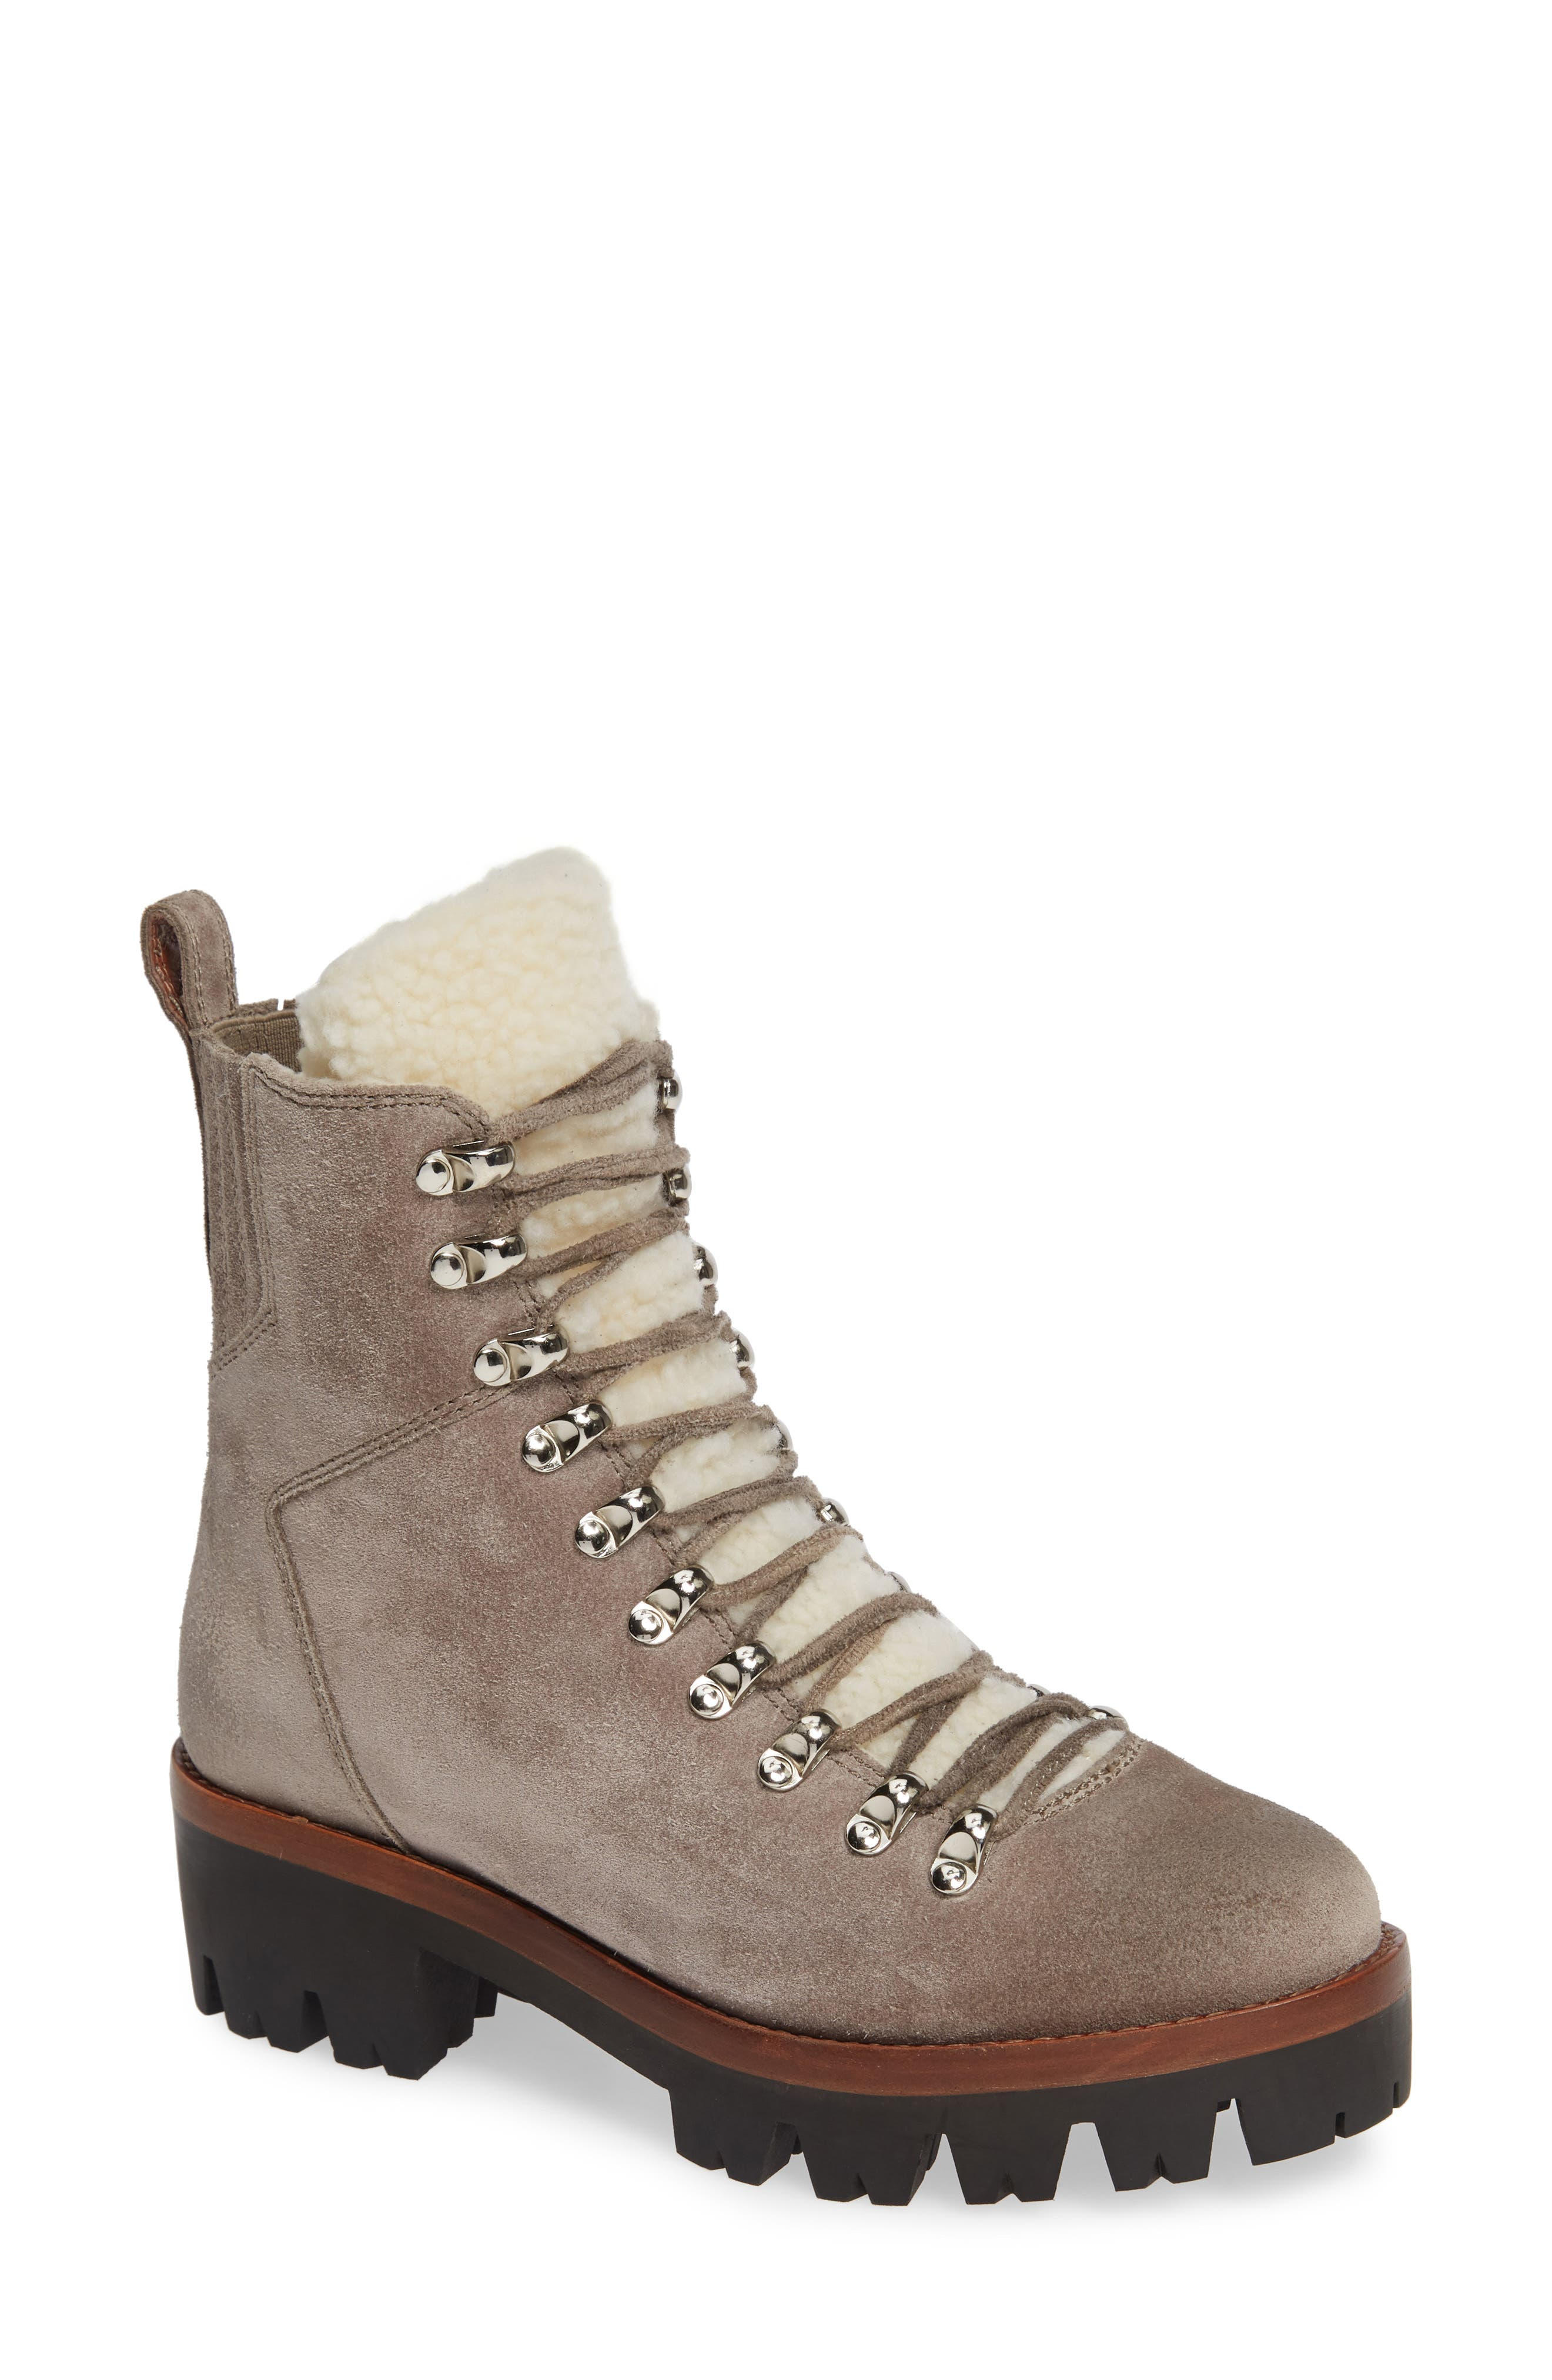 JEFFREY CAMPBELL Culvert Boot in Taupe Suede Ivory